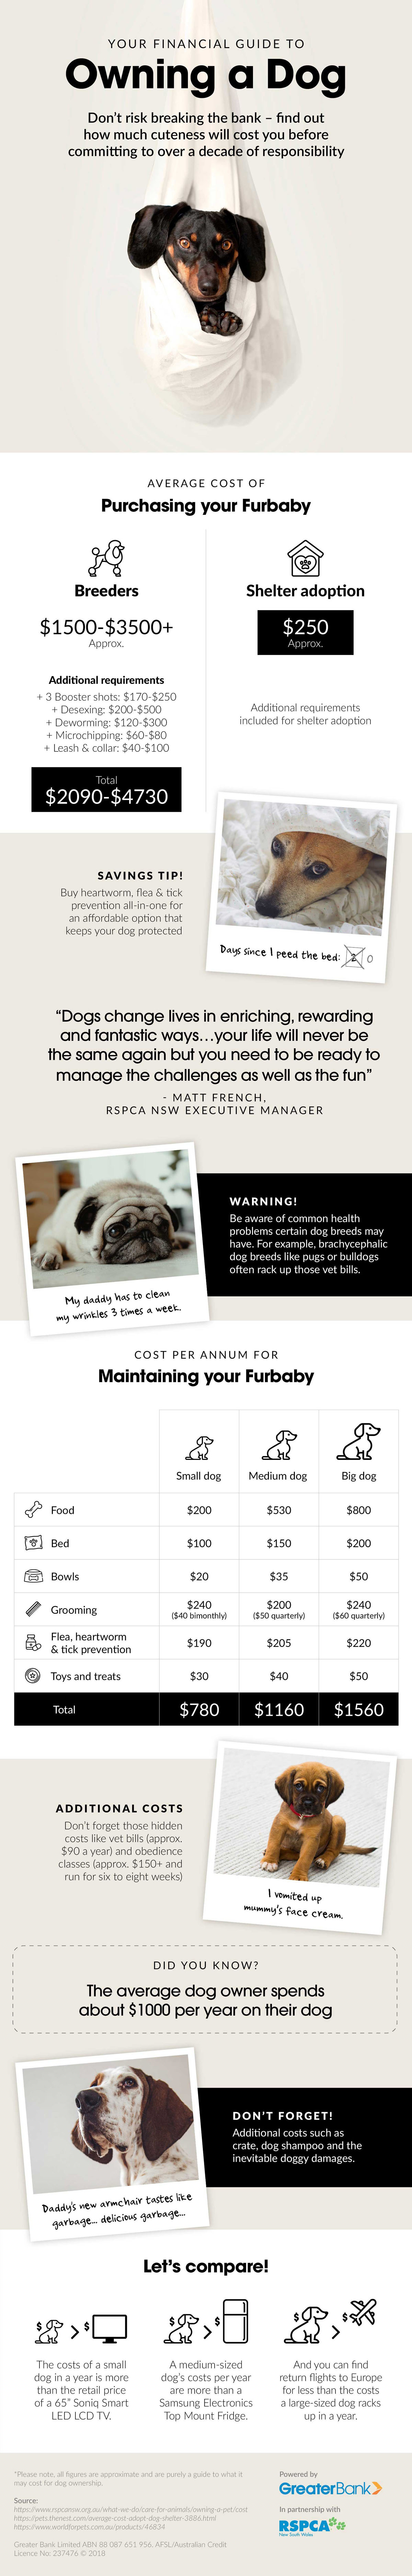 A Financial Guide to Owning a Dog